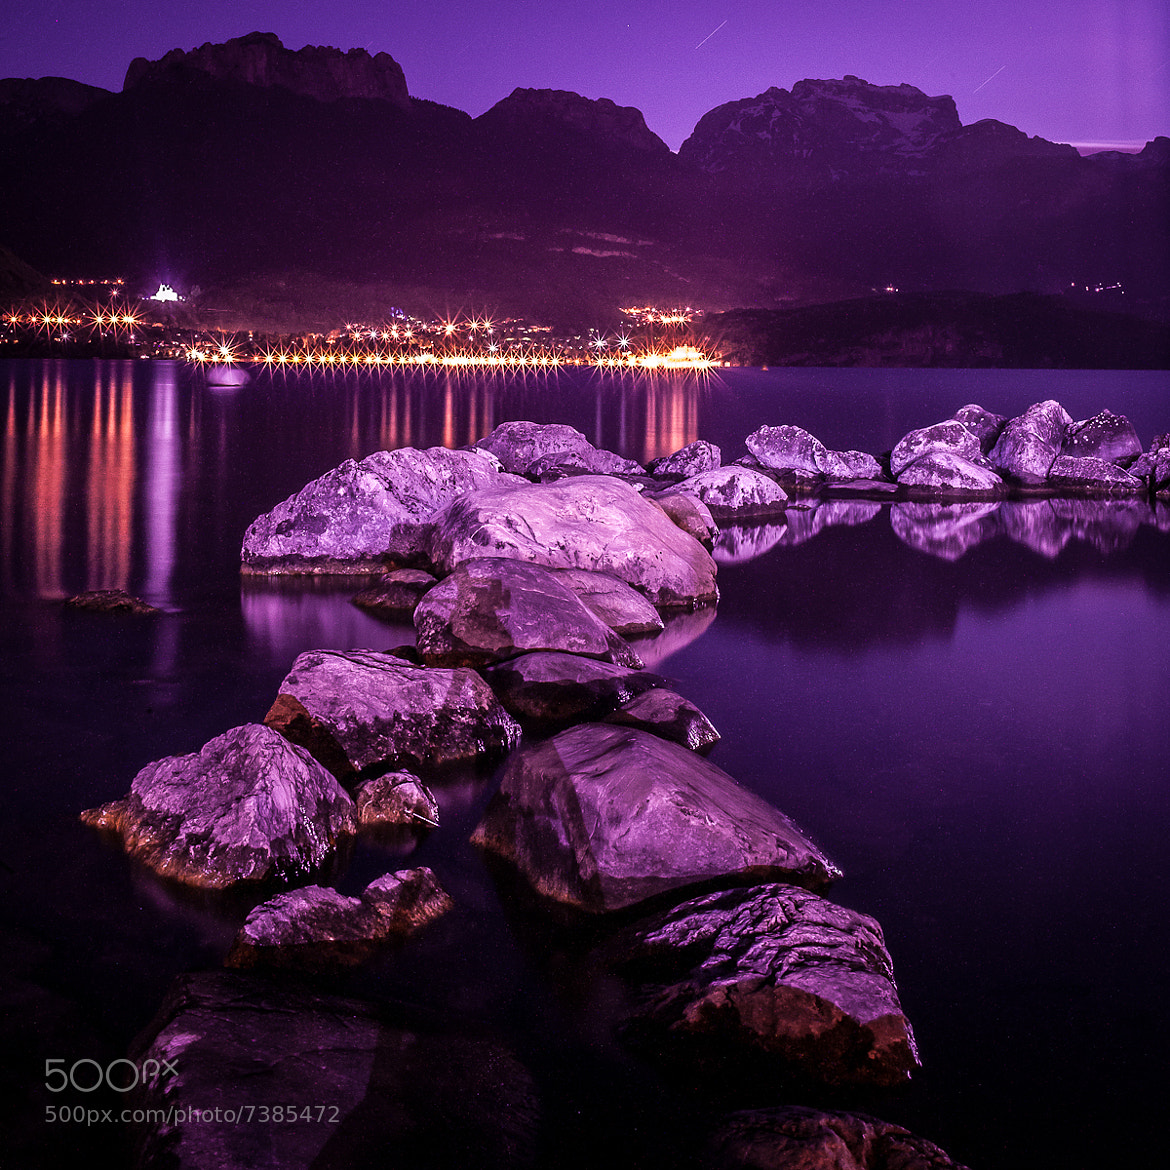 Photograph Annecy Lake, France. by Pierre Muller on 500px